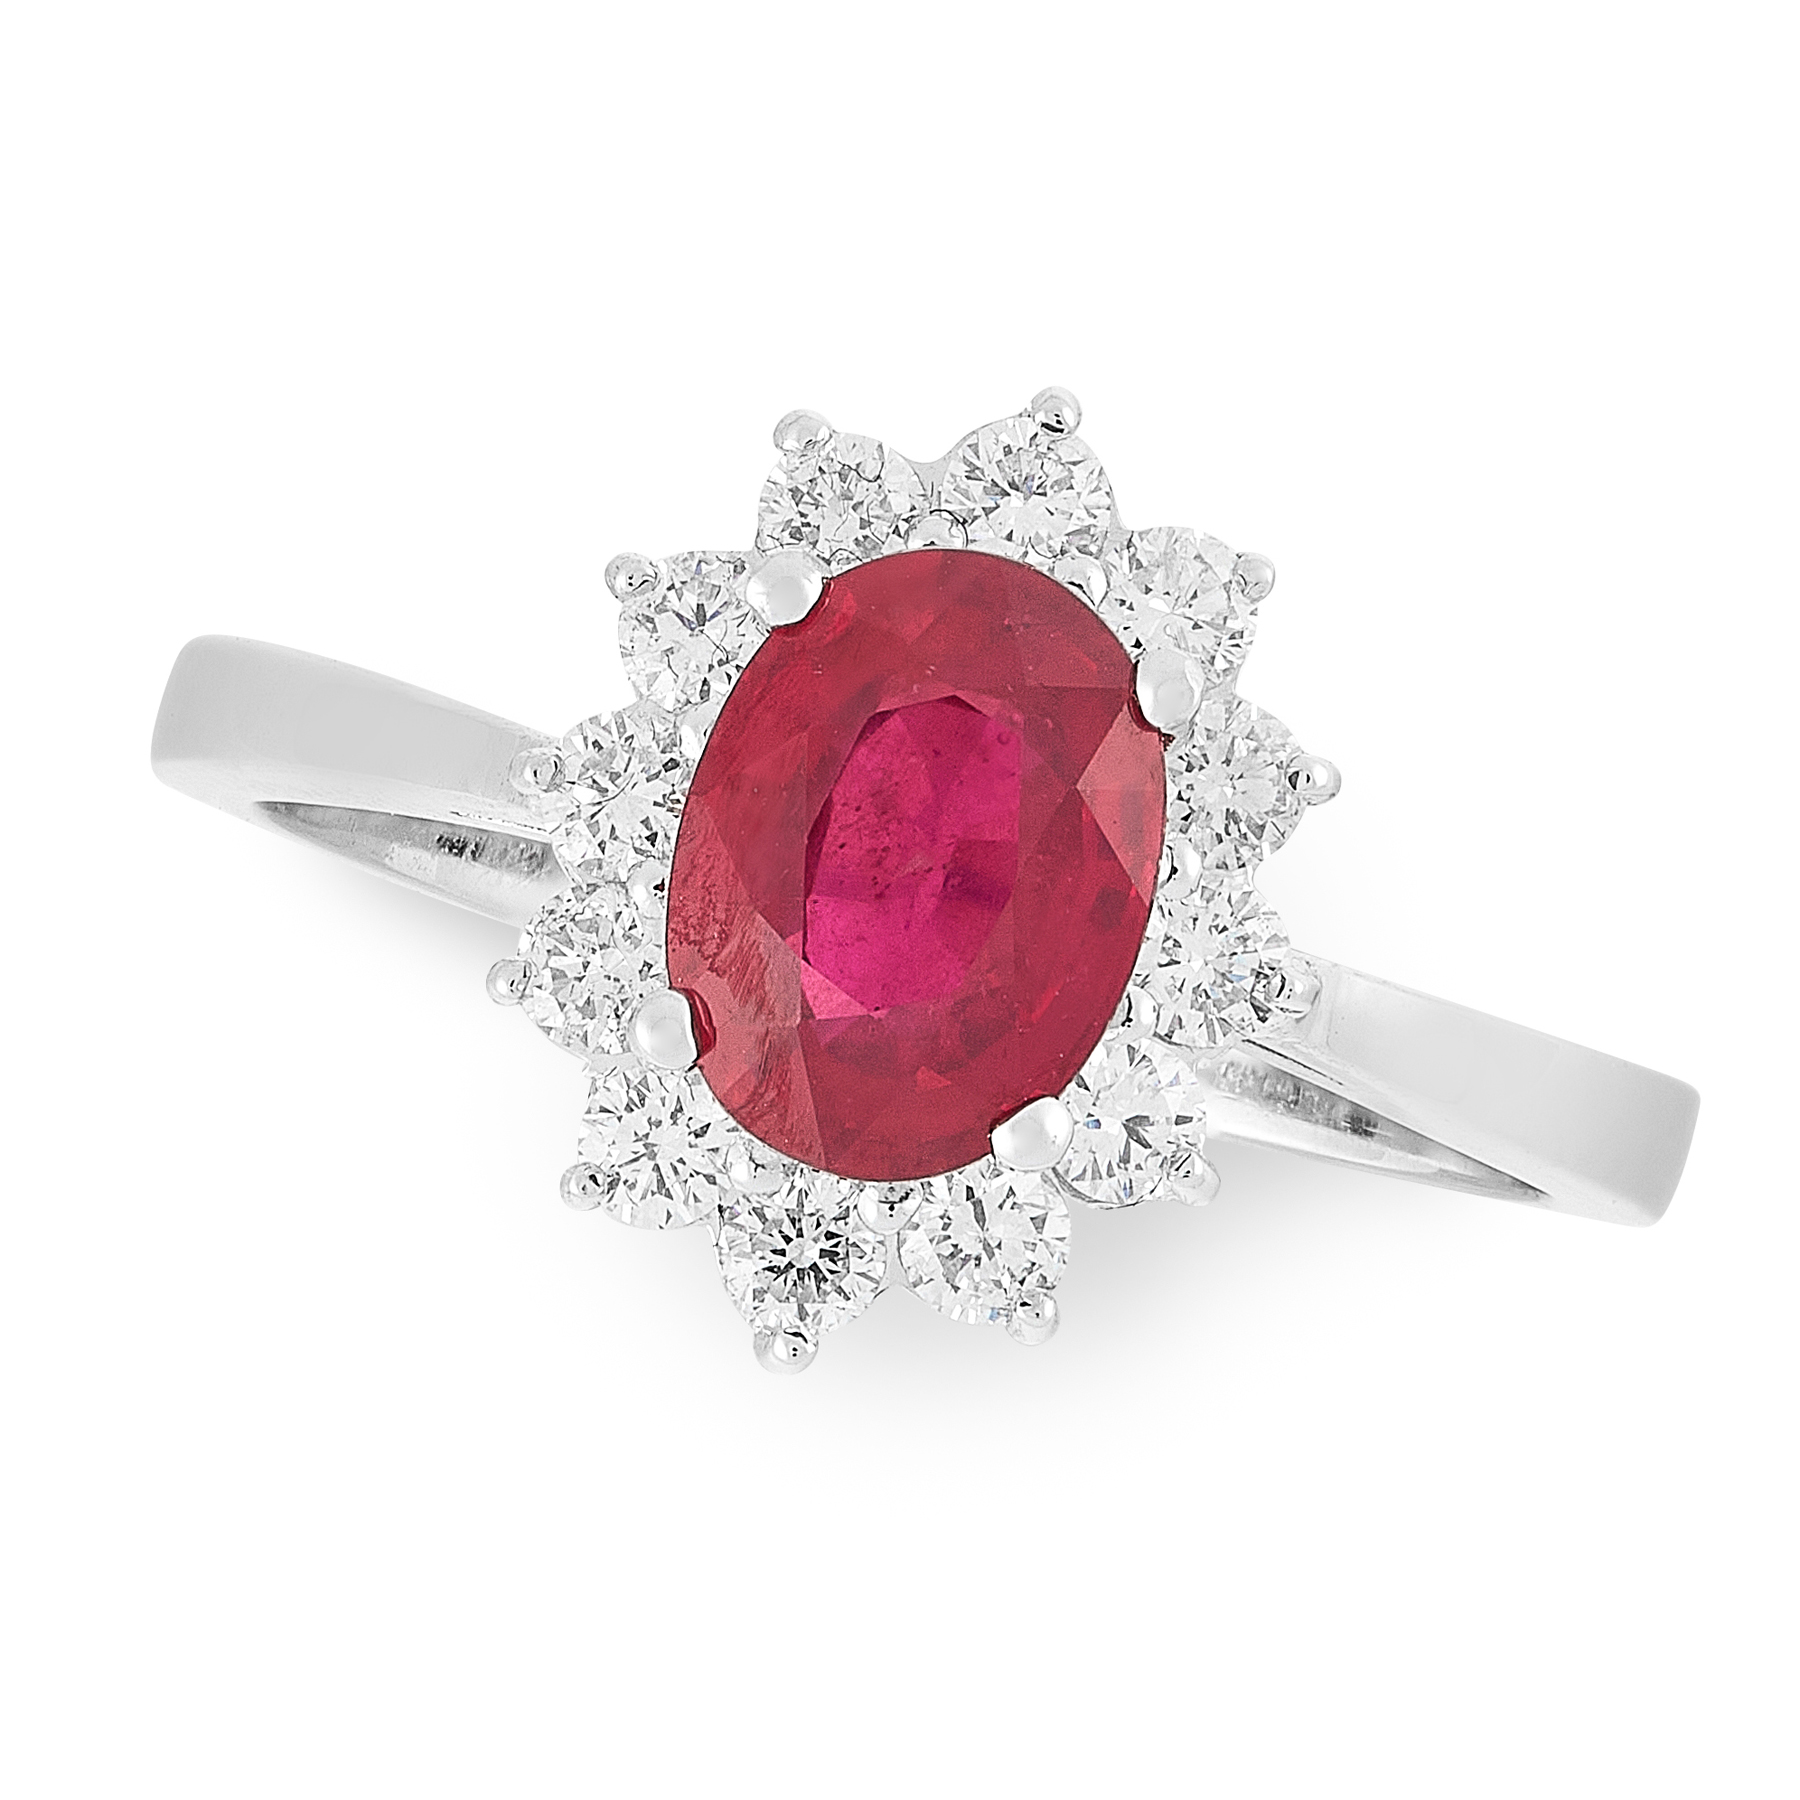 A RUBY AND DIAMOND RING in 18ct white gold, set with an oval cut ruby of 1.89 carats within a border